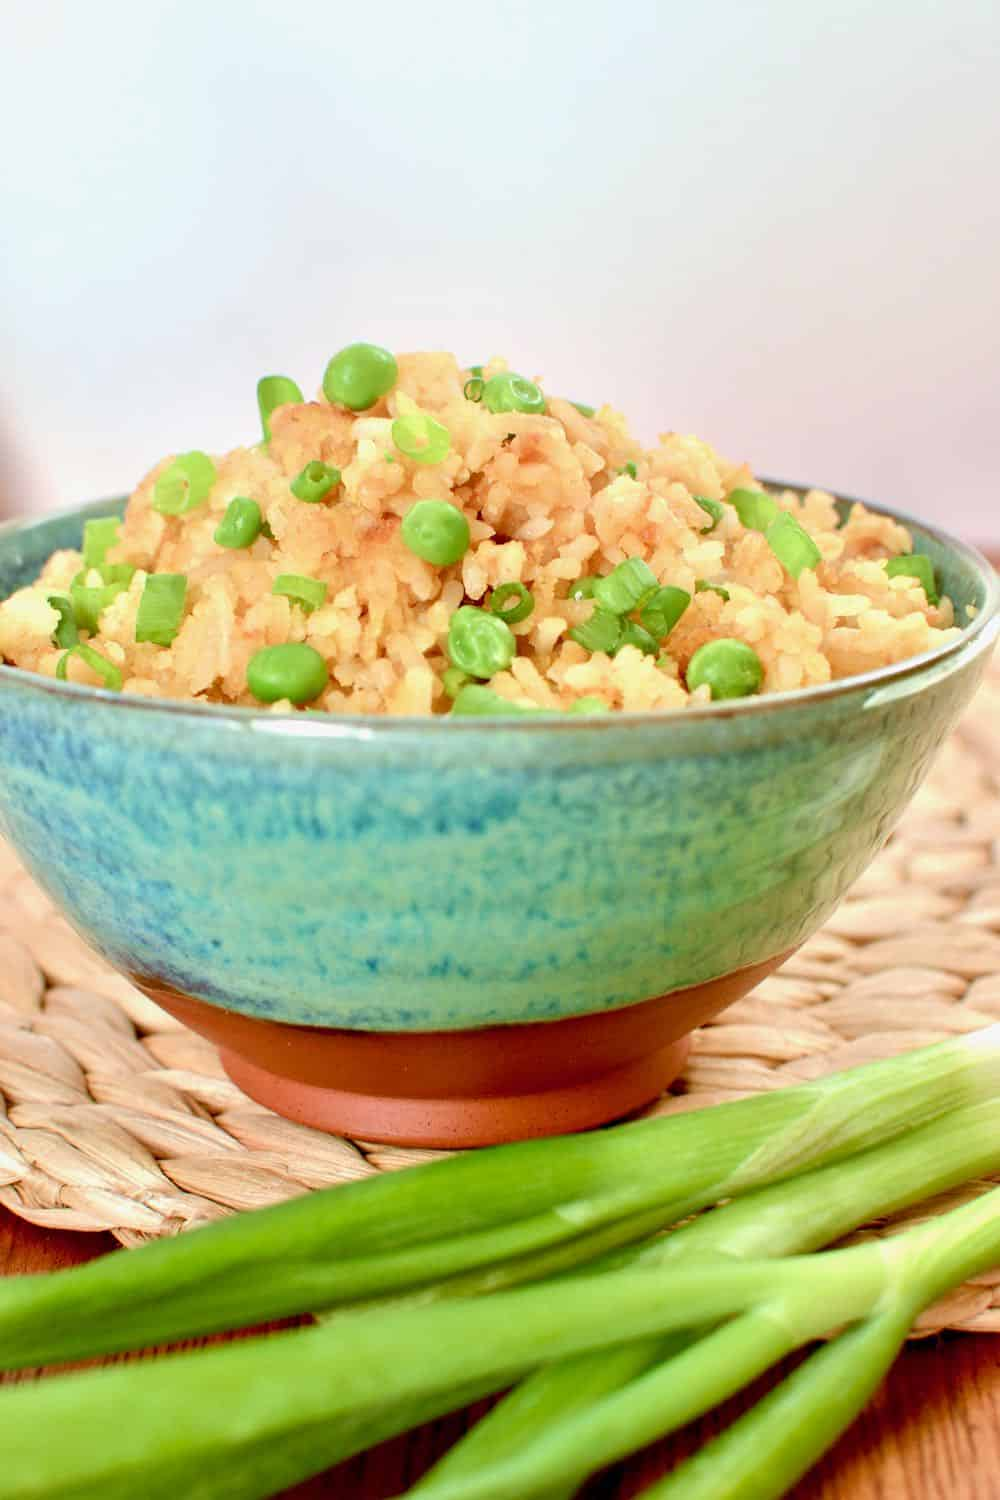 A bowl of vegan egg fried rice with peas and spring onions